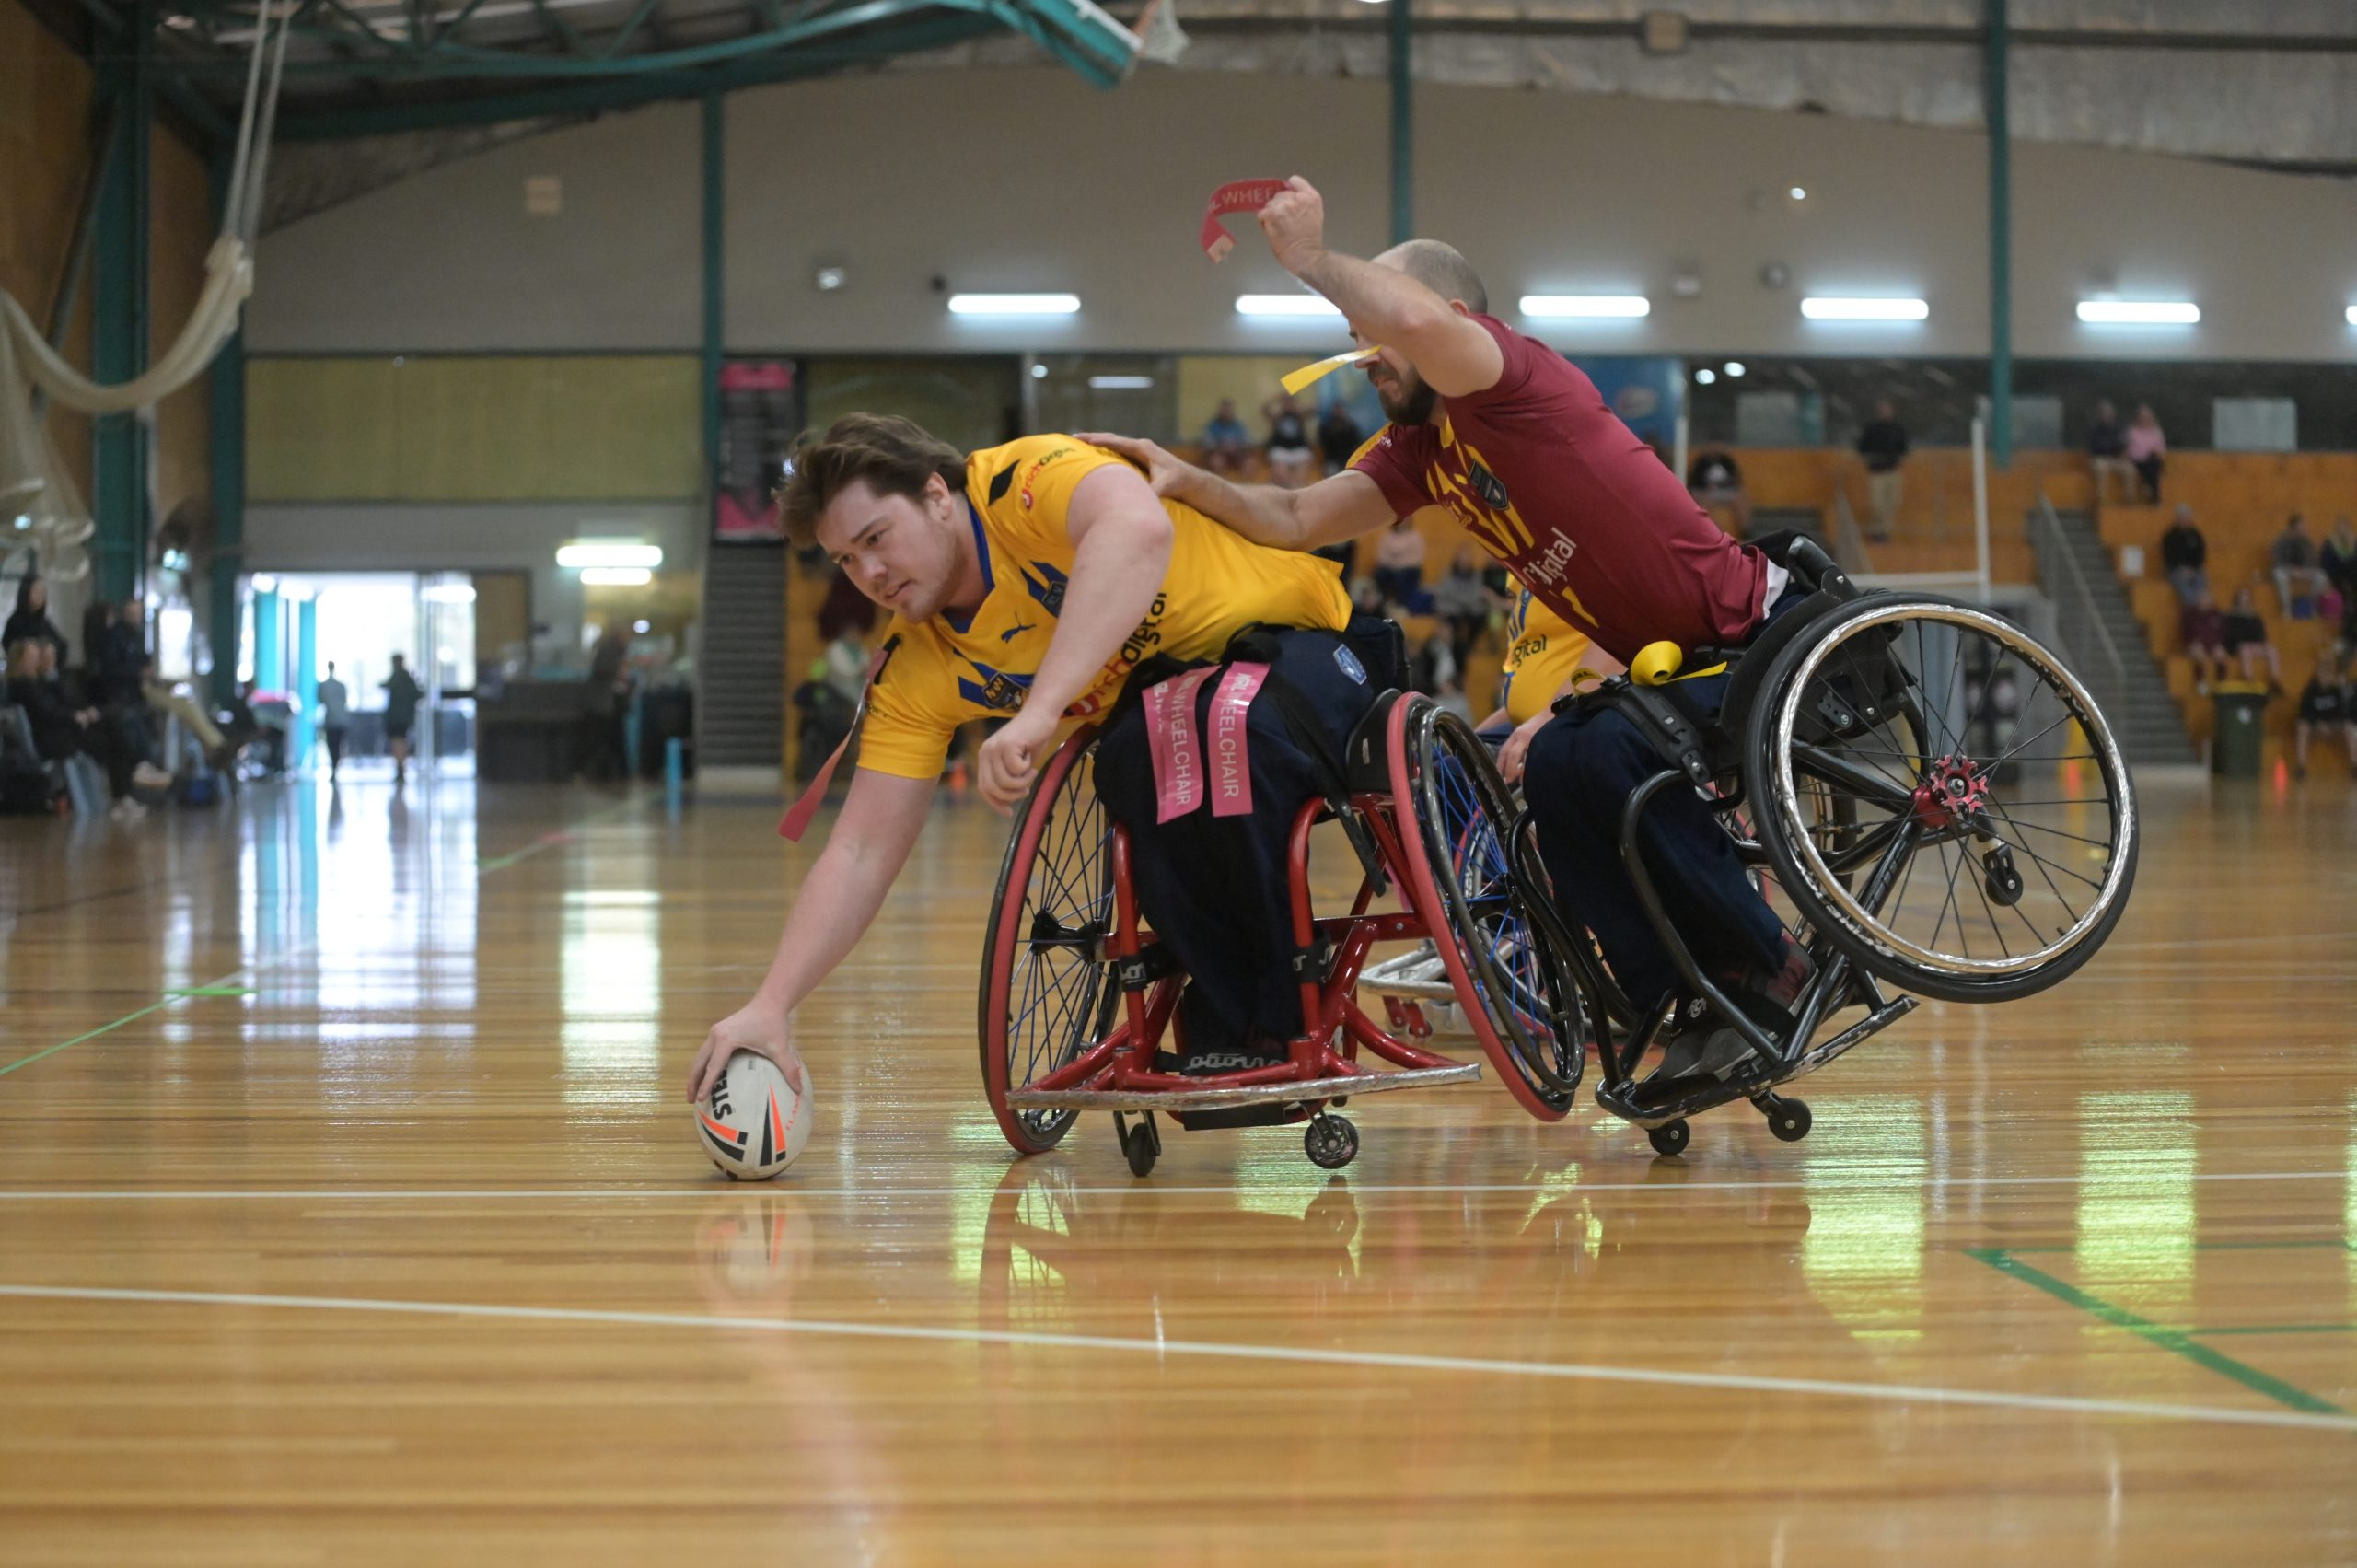 NSW Country dominate City in Wheelchair Rugby League